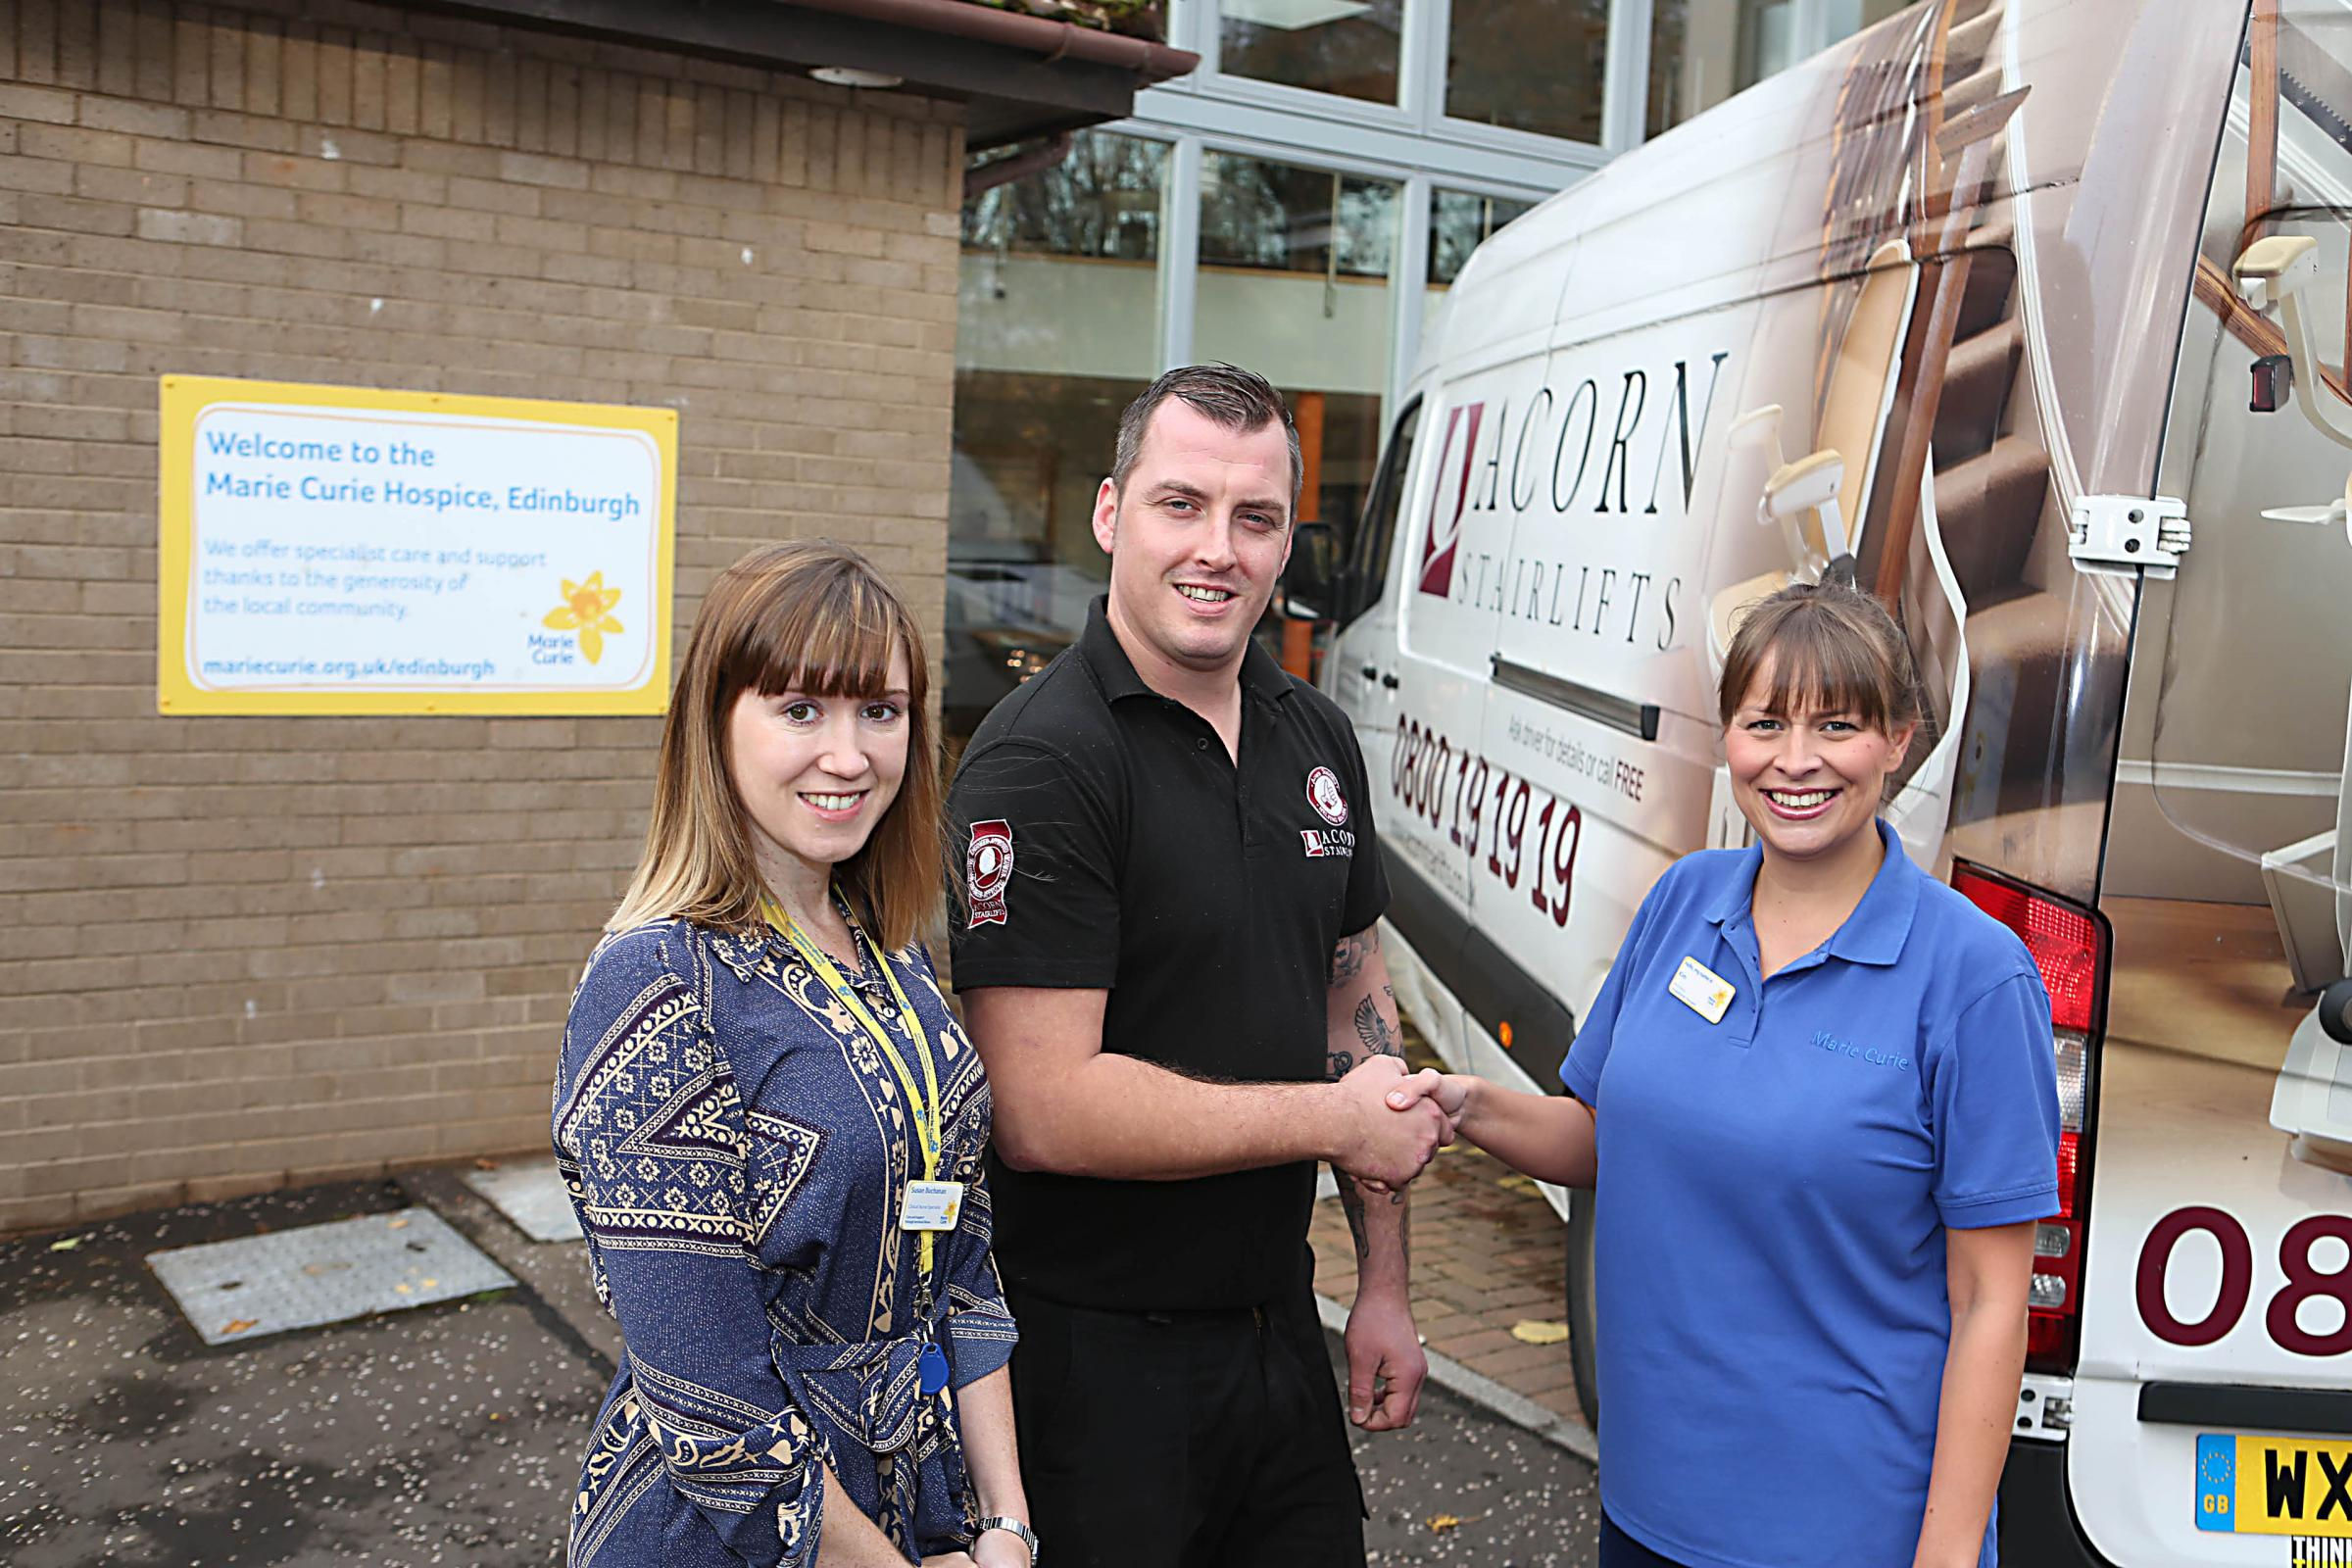 Marie Curie clinical nurse specialist Susan Buchanan, left, with Acorn representative Luke Gorringe and Marie Curie's occupational therapist Kim Pollock